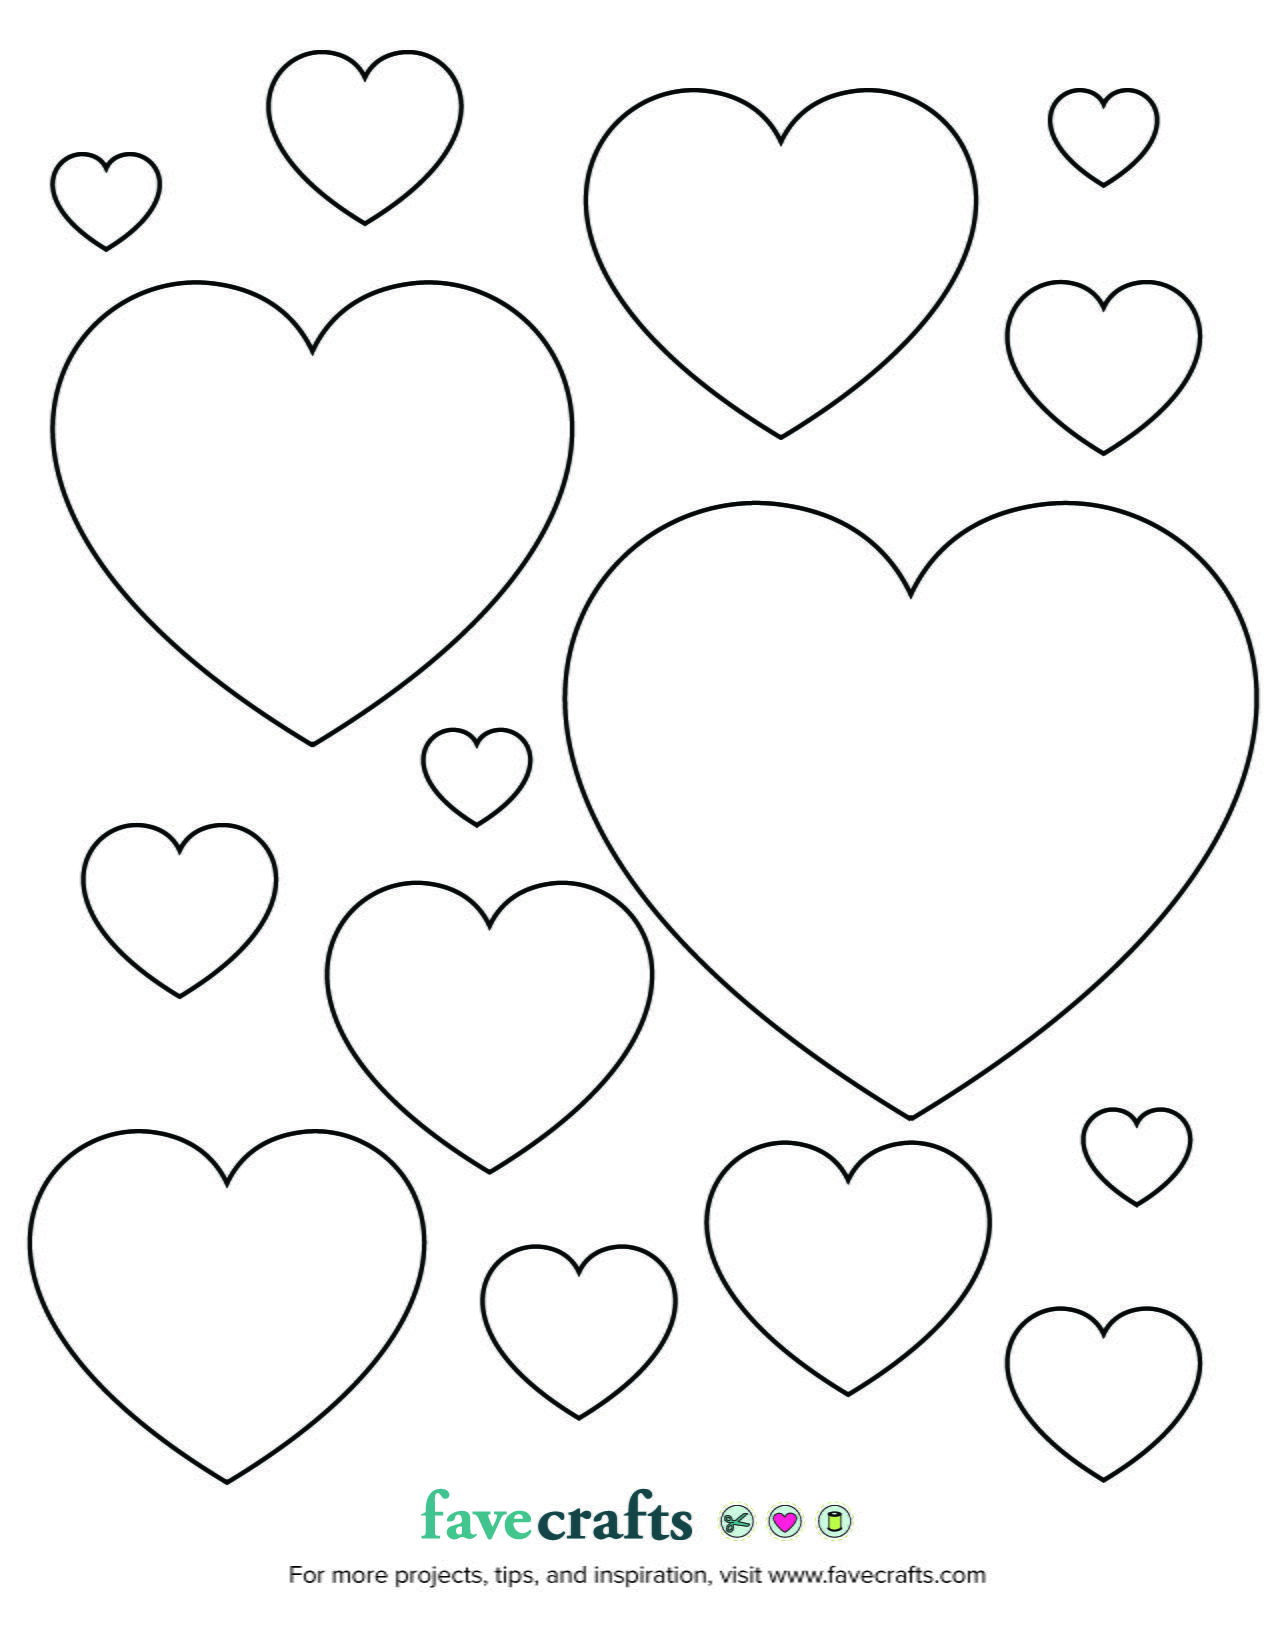 Printable Hearts Heart Printable Printable Heart Template Heart Coloring Pages